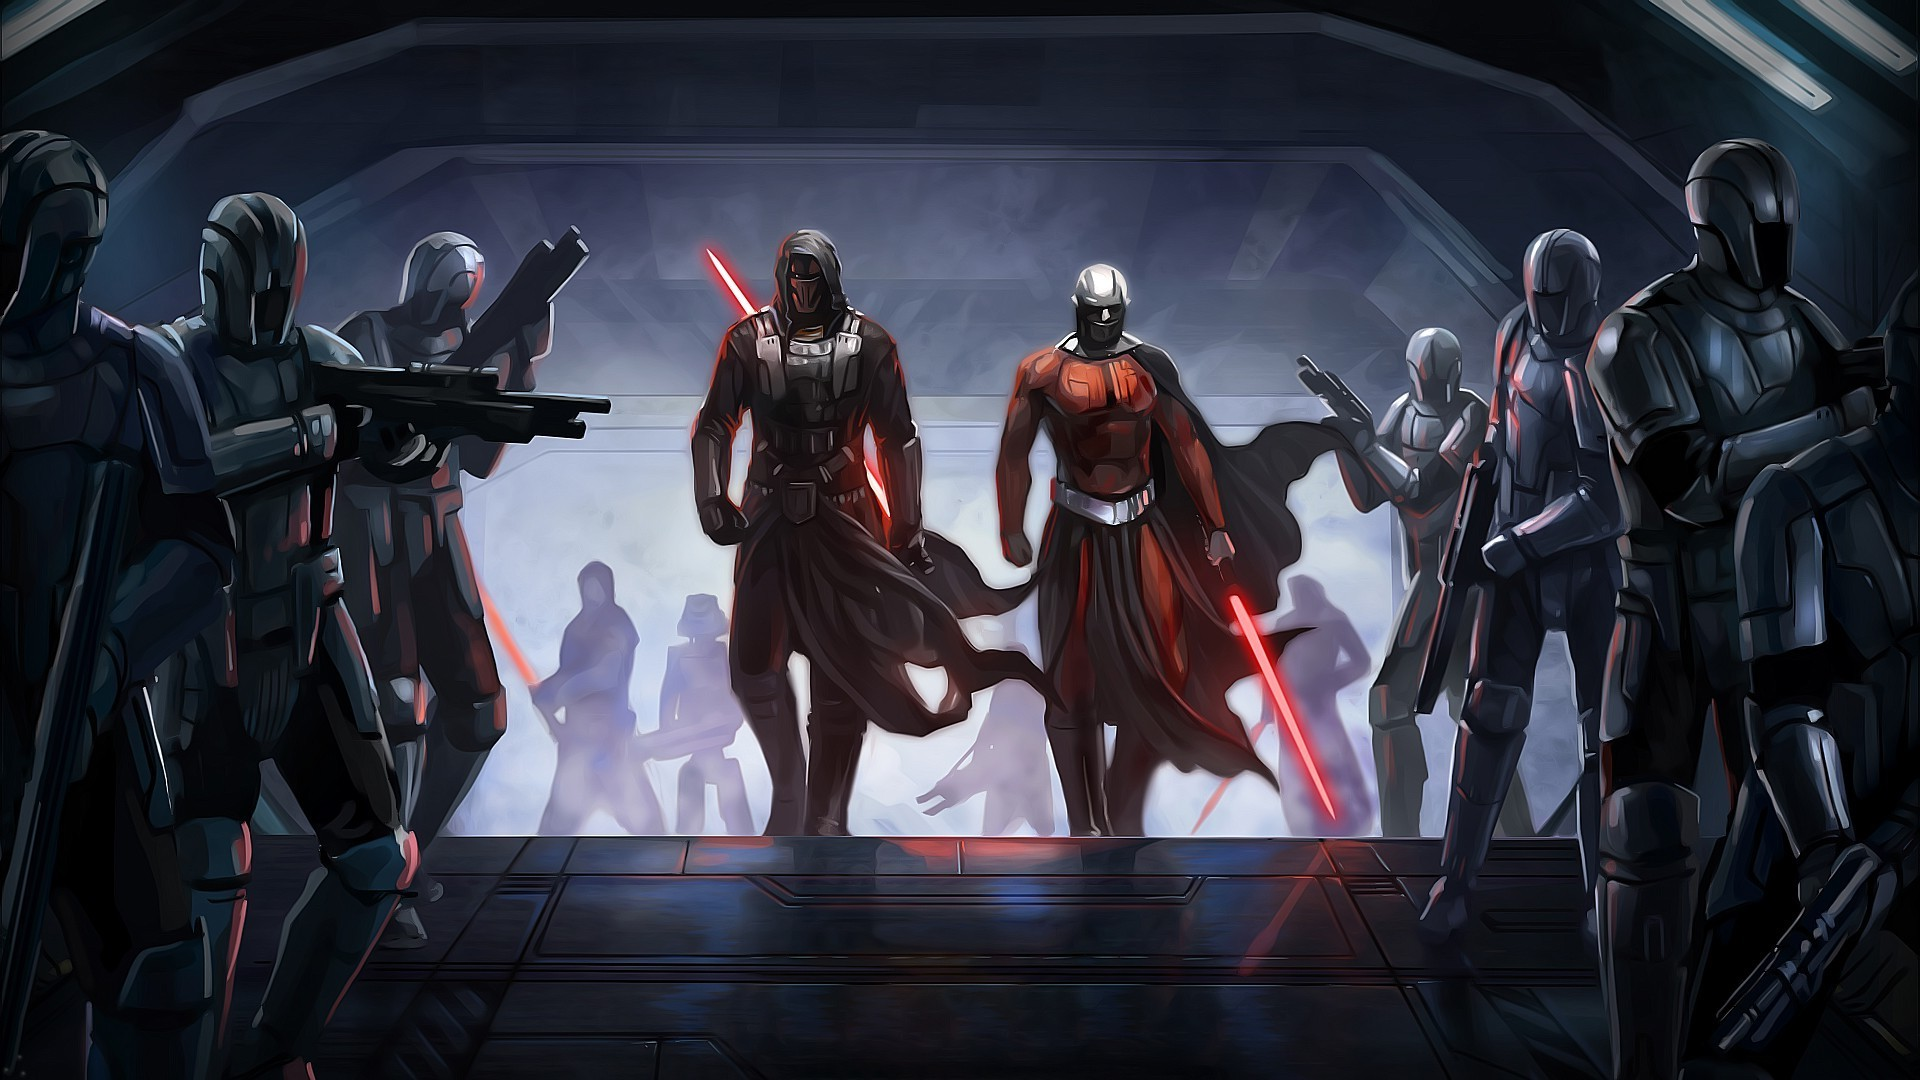 Revan Lightsaber Star Wars Malak Sith Star Wars Star Wars Knights Of The Old Republic 1920x1080 Wallpaper Teahub Io